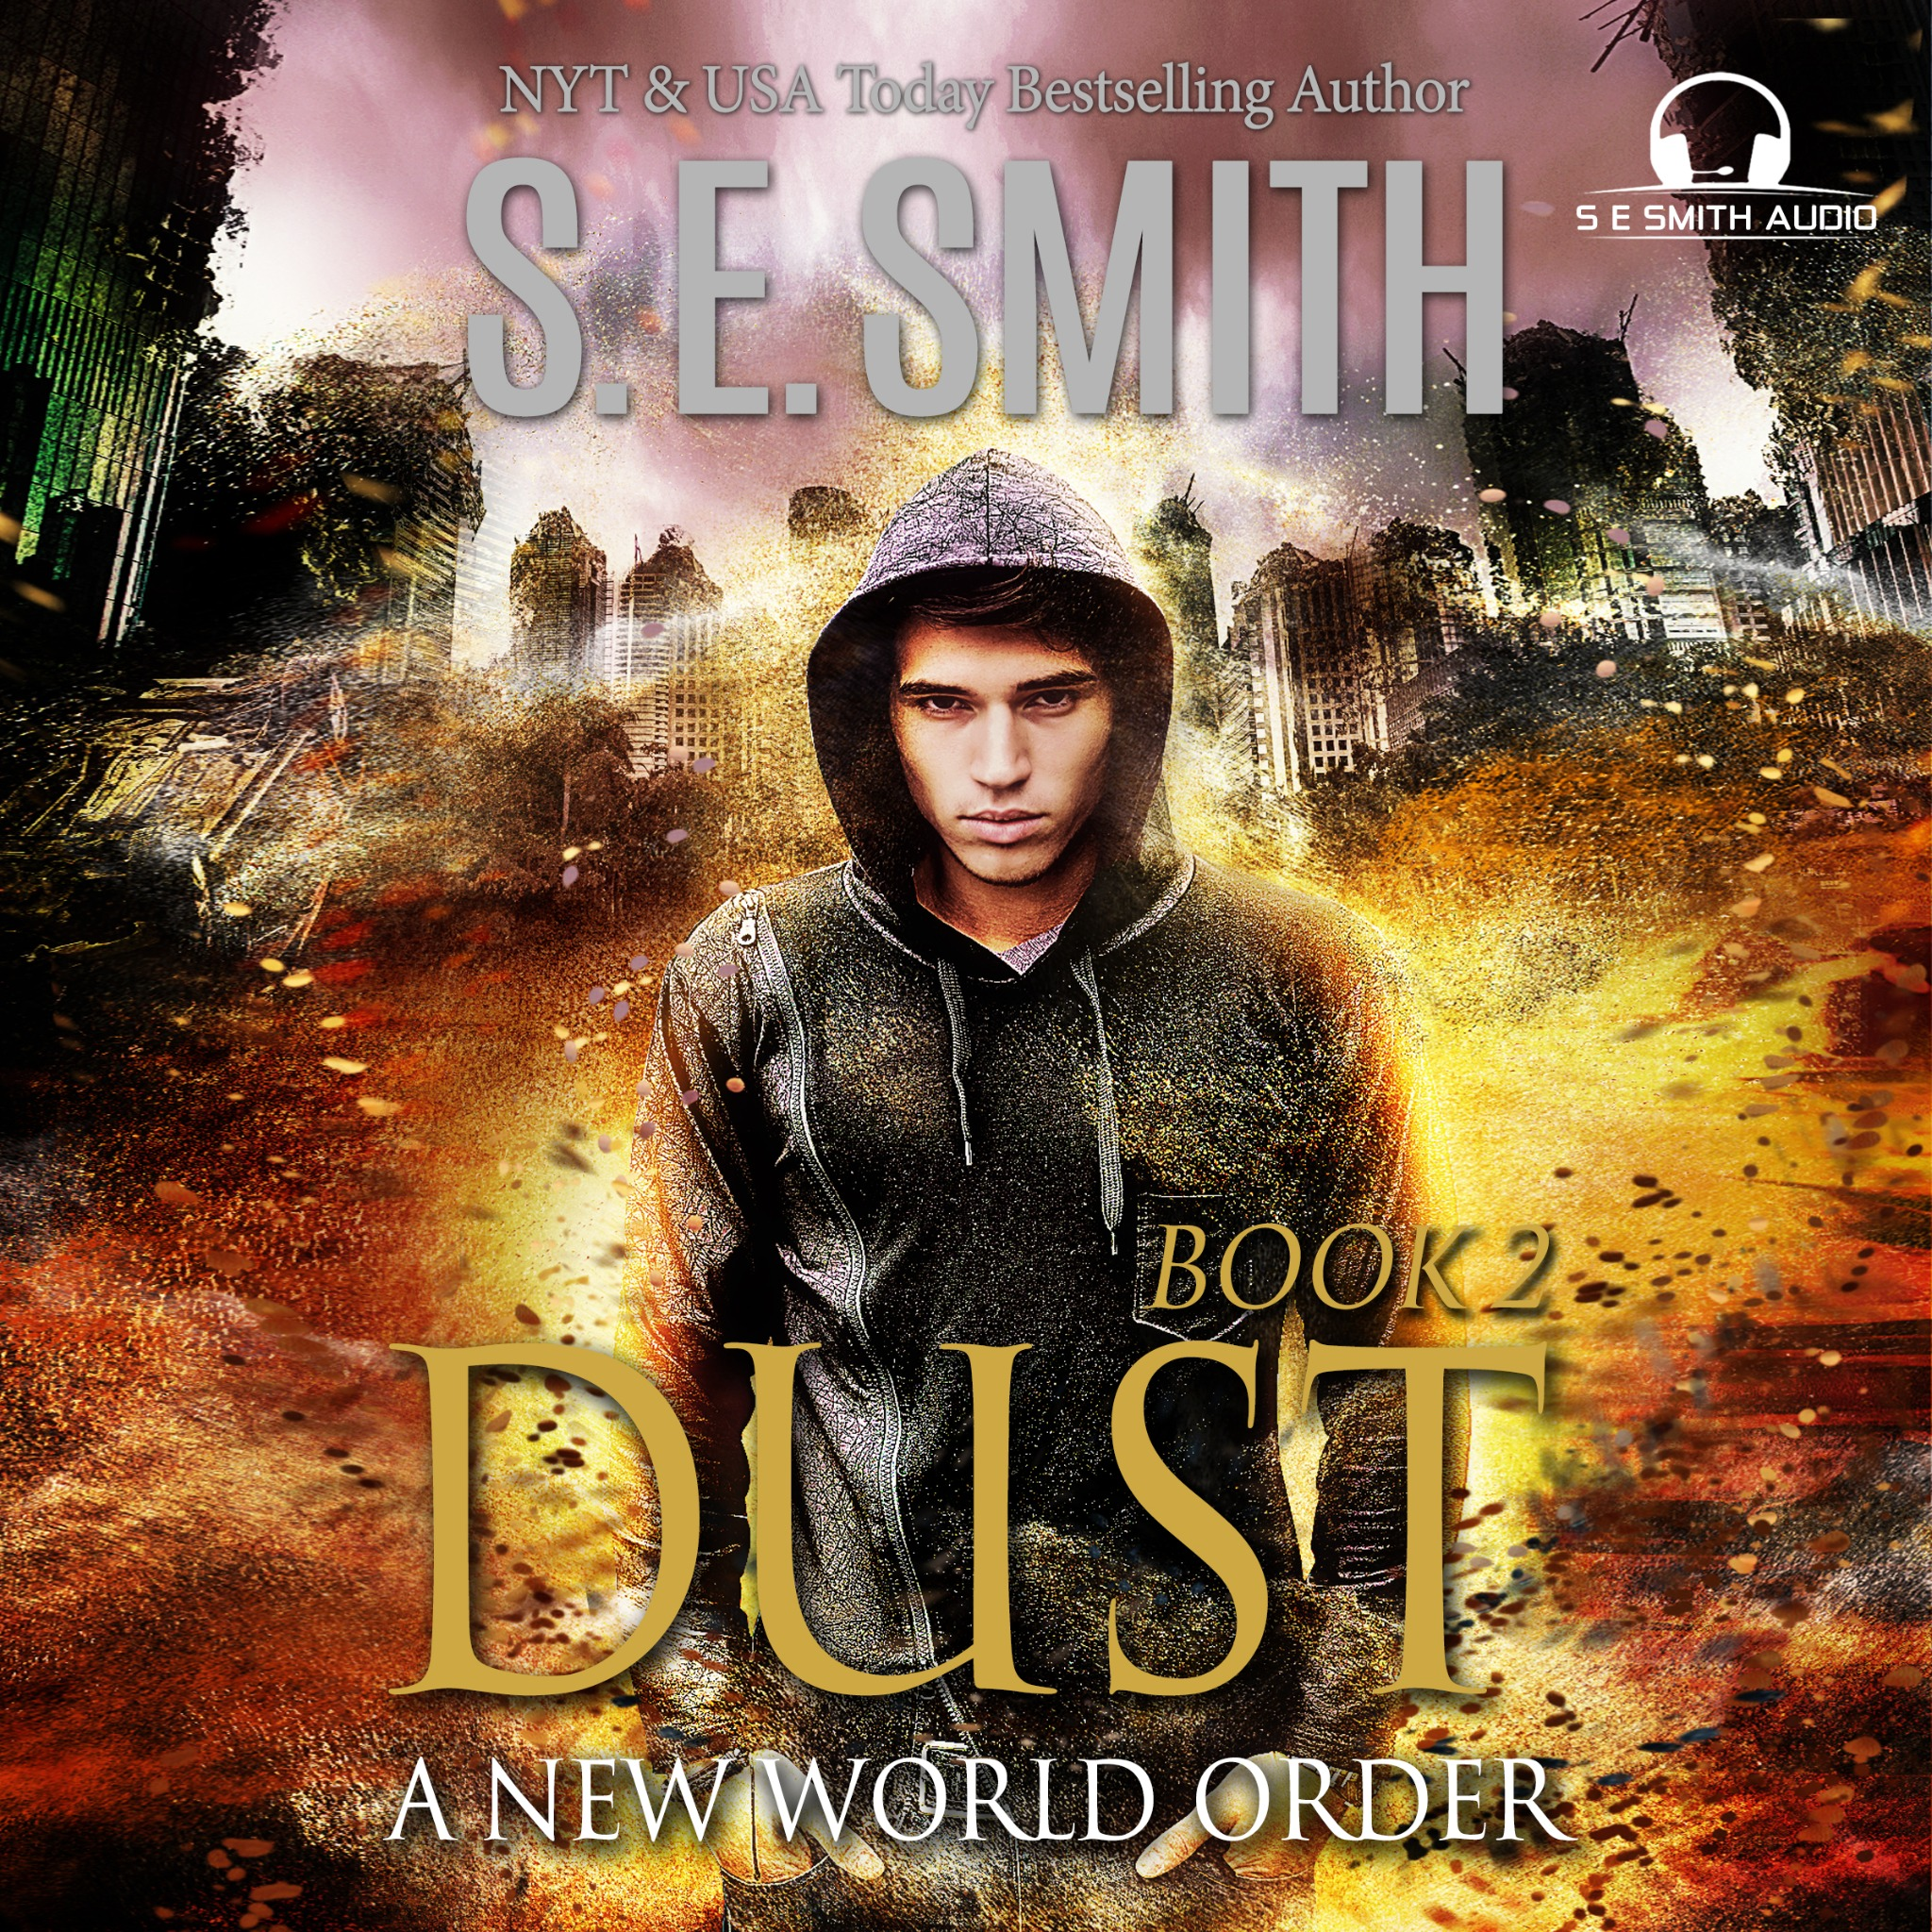 Dust: A New World Order: Book 2 (The Dust Series) (Audiobook CD)